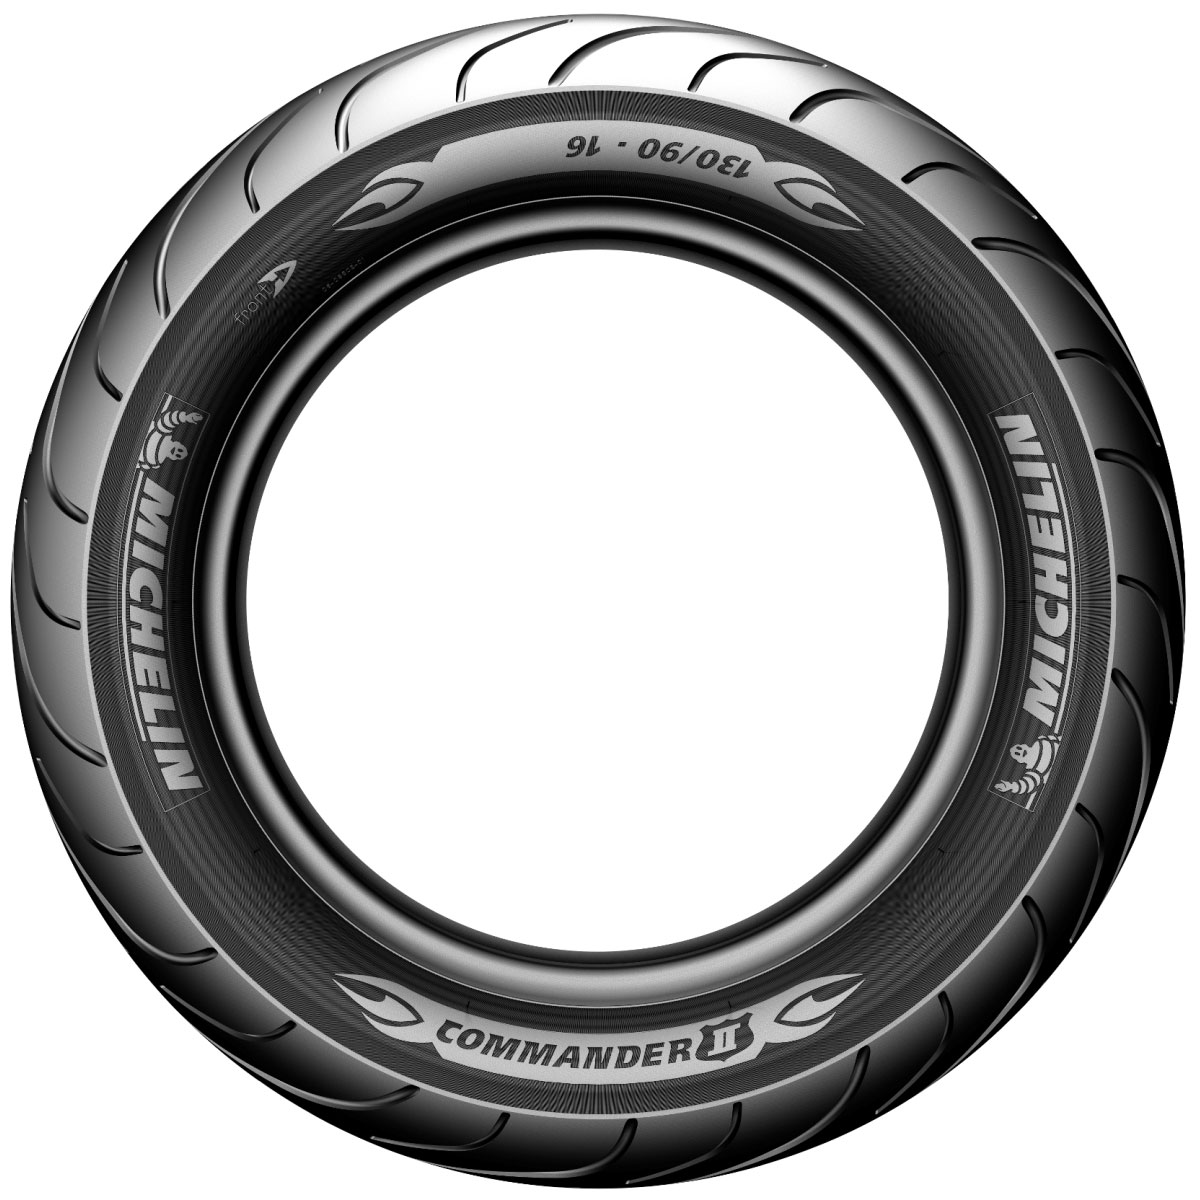 Clip Art Tire Clip Art tire clipart kid michelin motorcycle racing tires